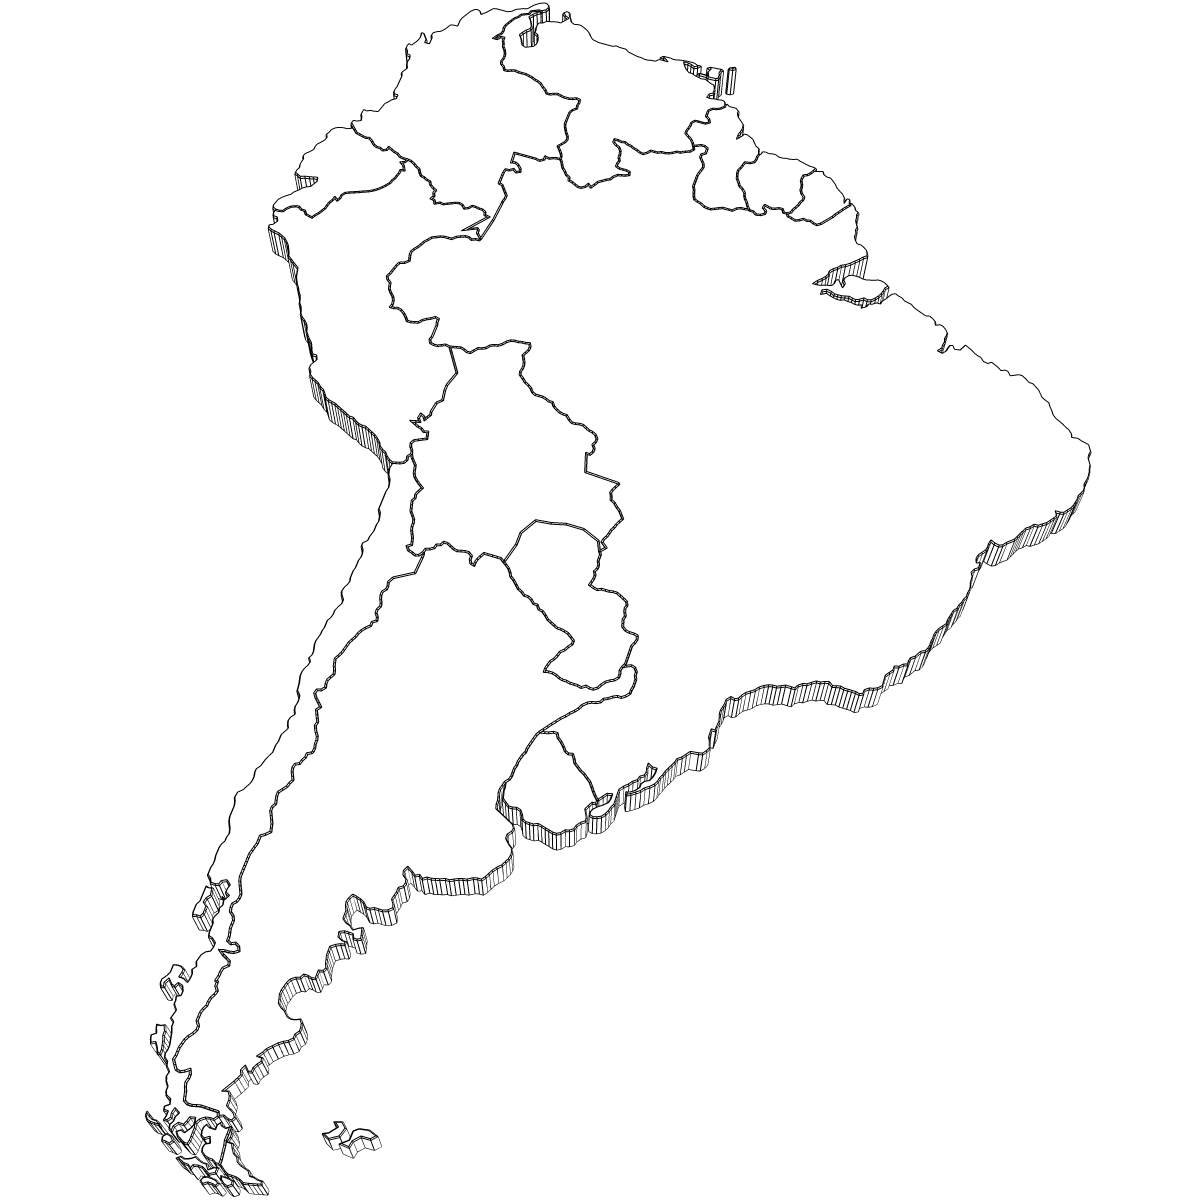 South America Map Drawing at GetDrawings.com | Free for personal use ...